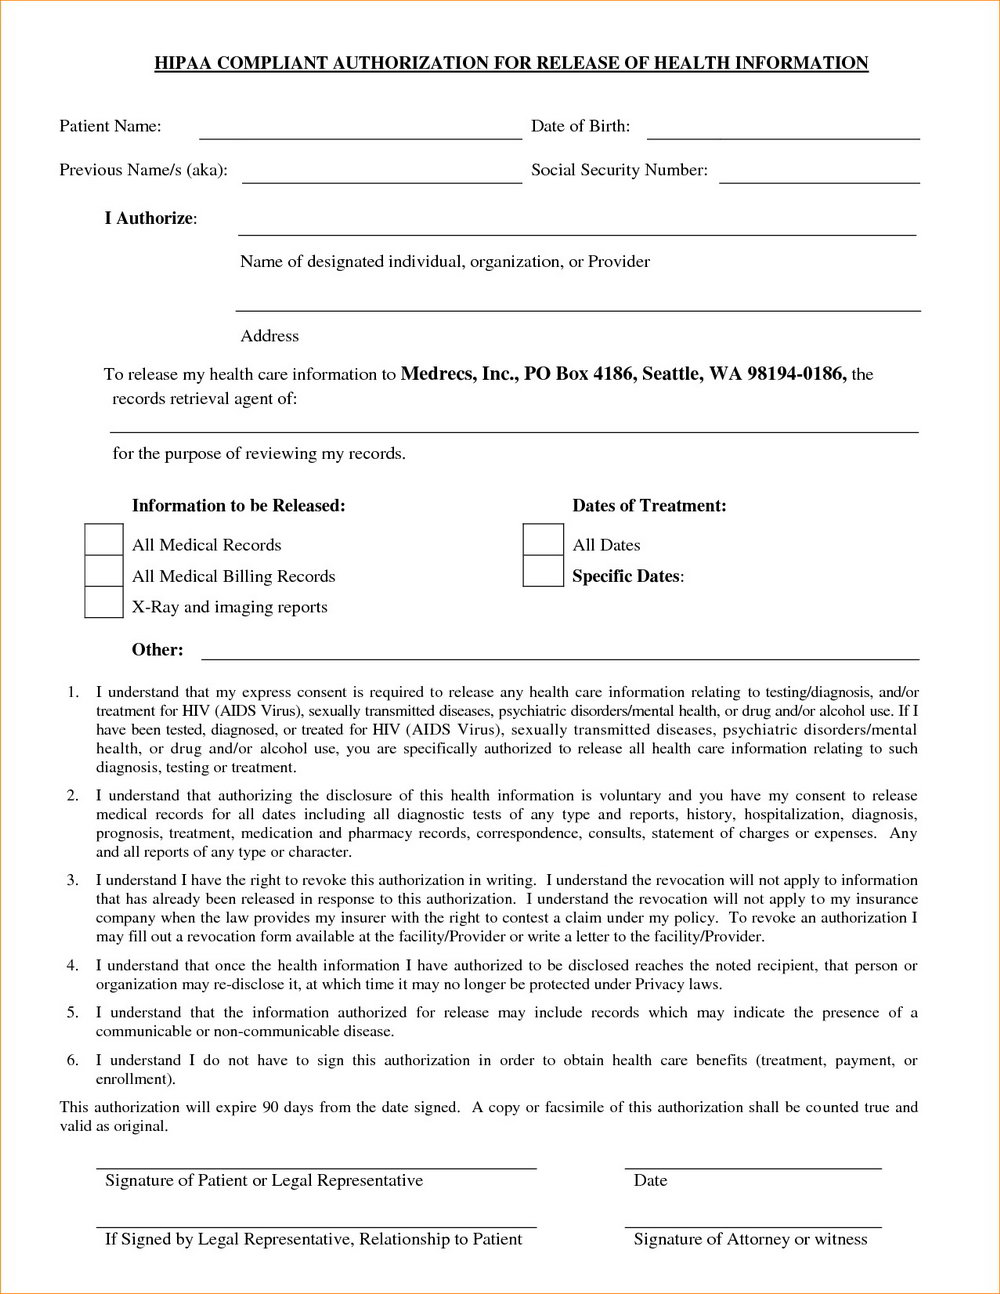 Hipaa Compliance Form In Spanish